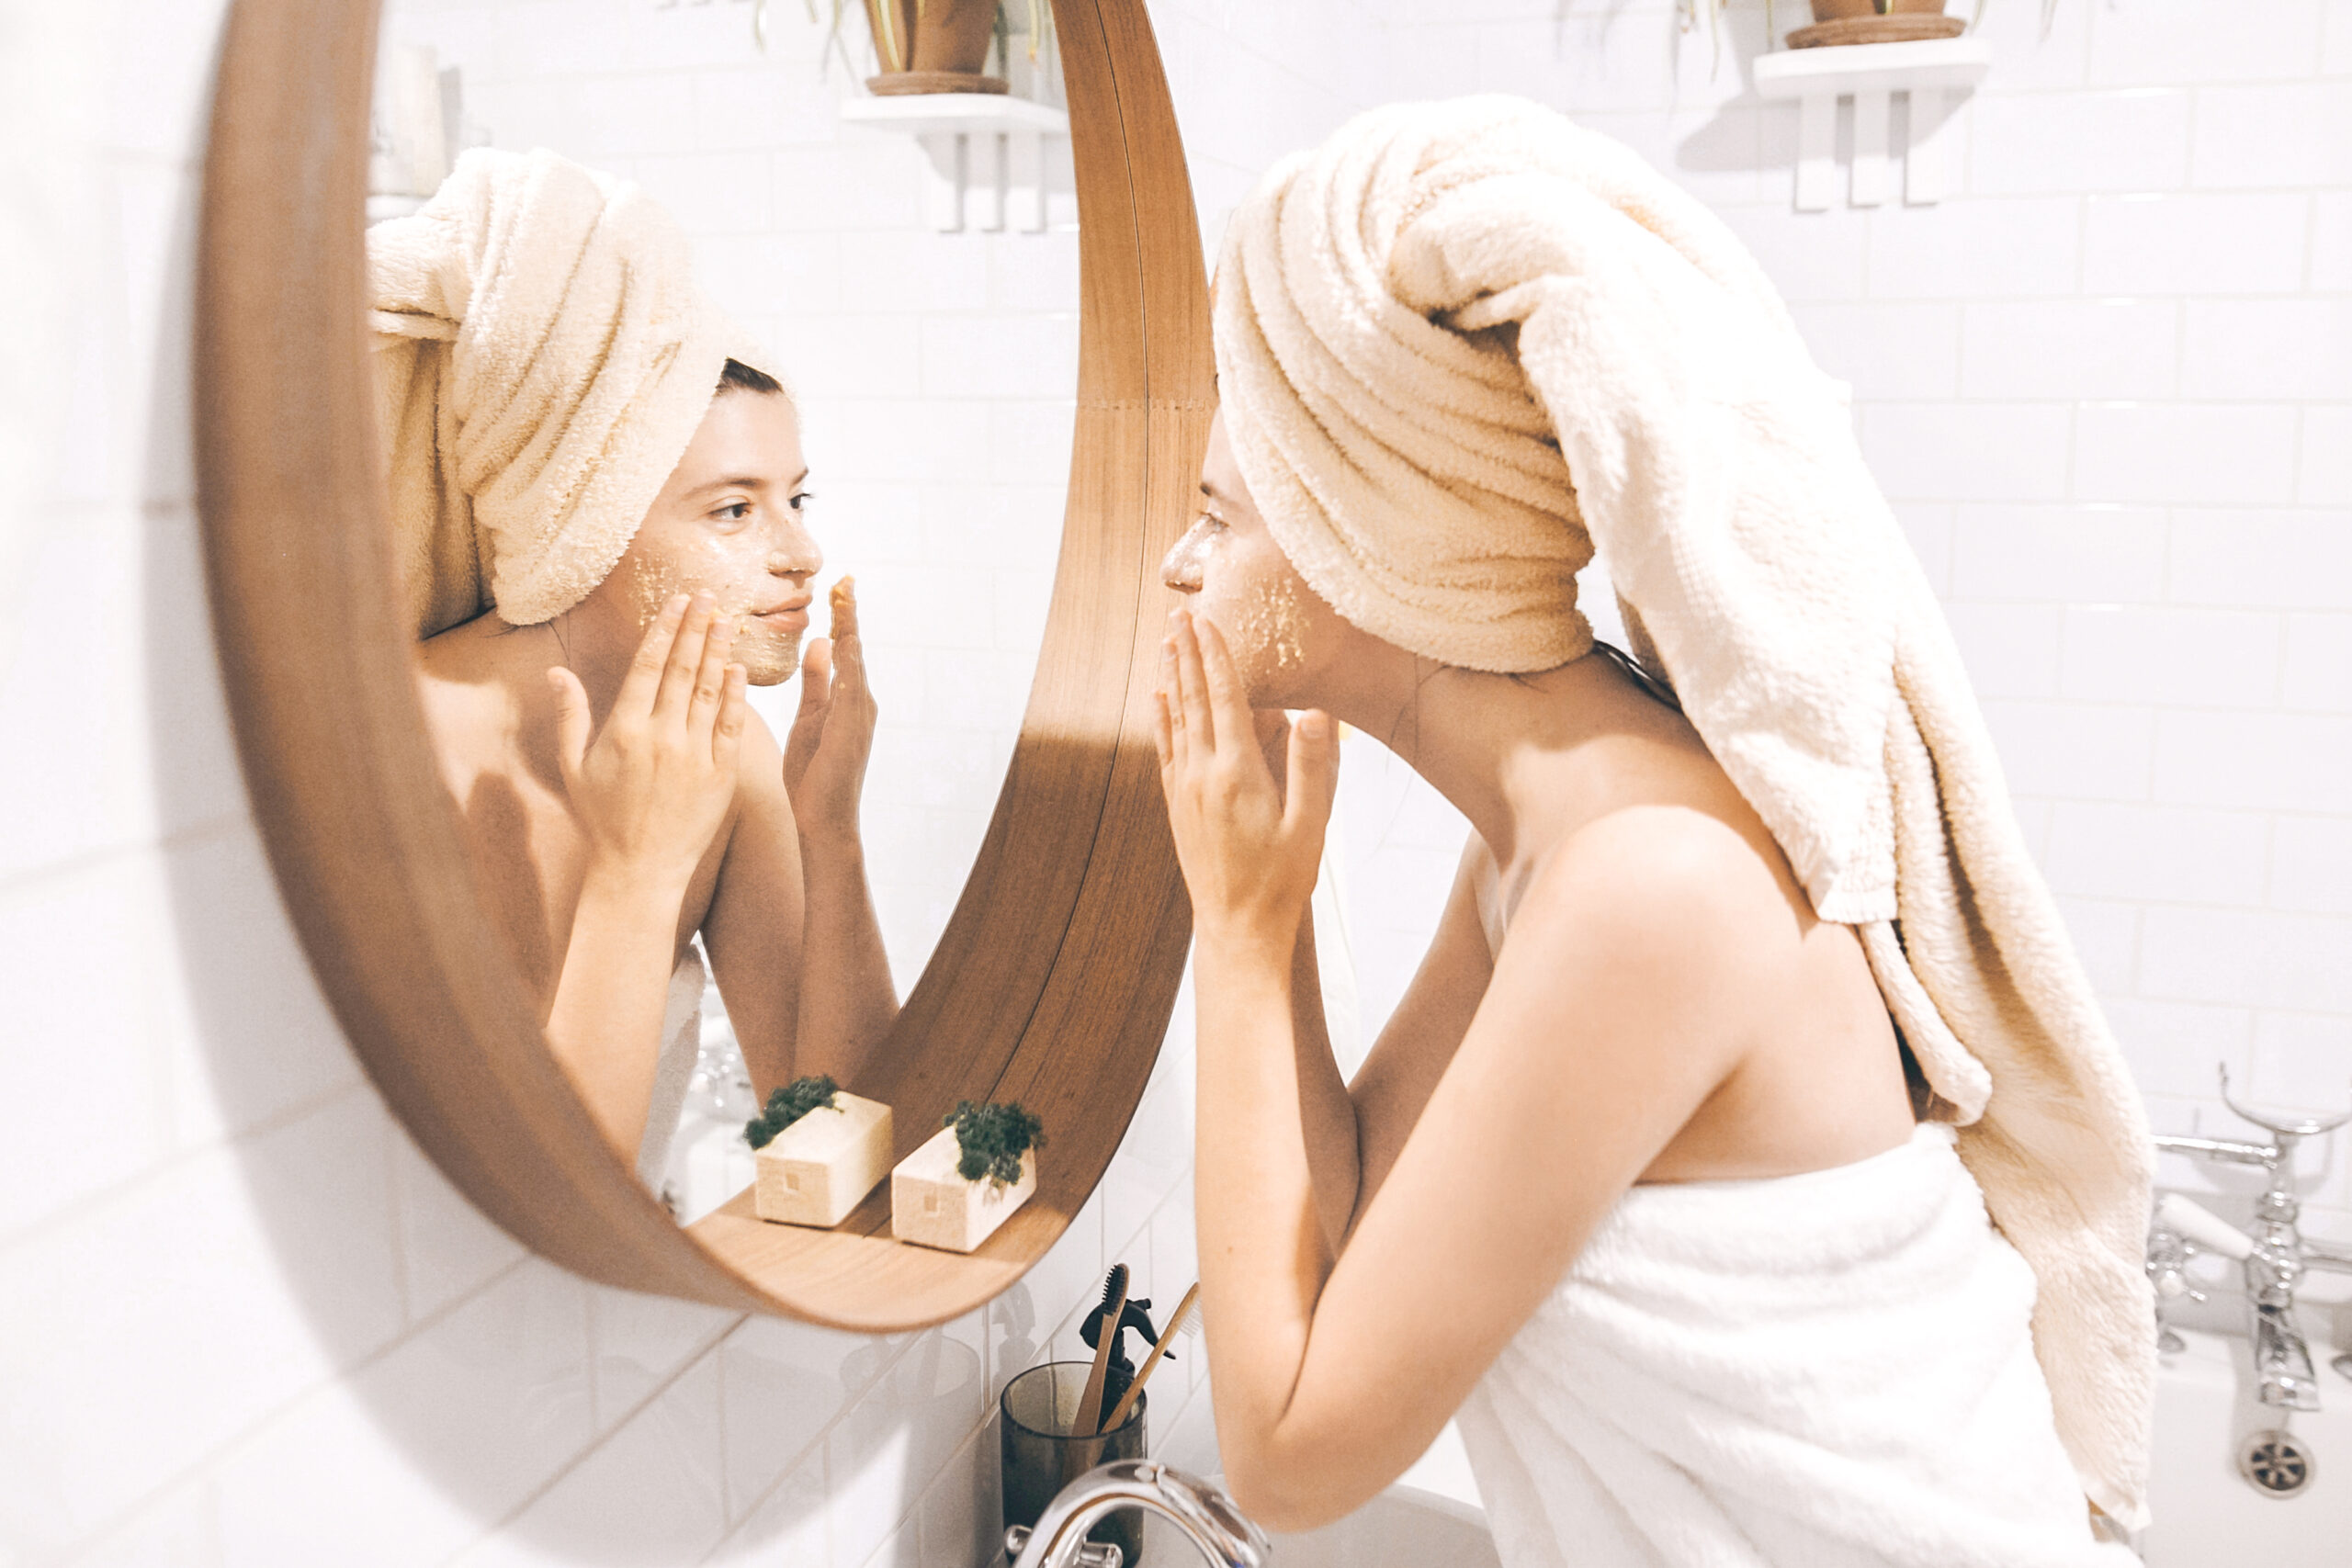 SUFFERING FROM BREAKOUTS? HERE ARE 4 TASTY FACTORS THAT COULD BE CAUSING THEM.